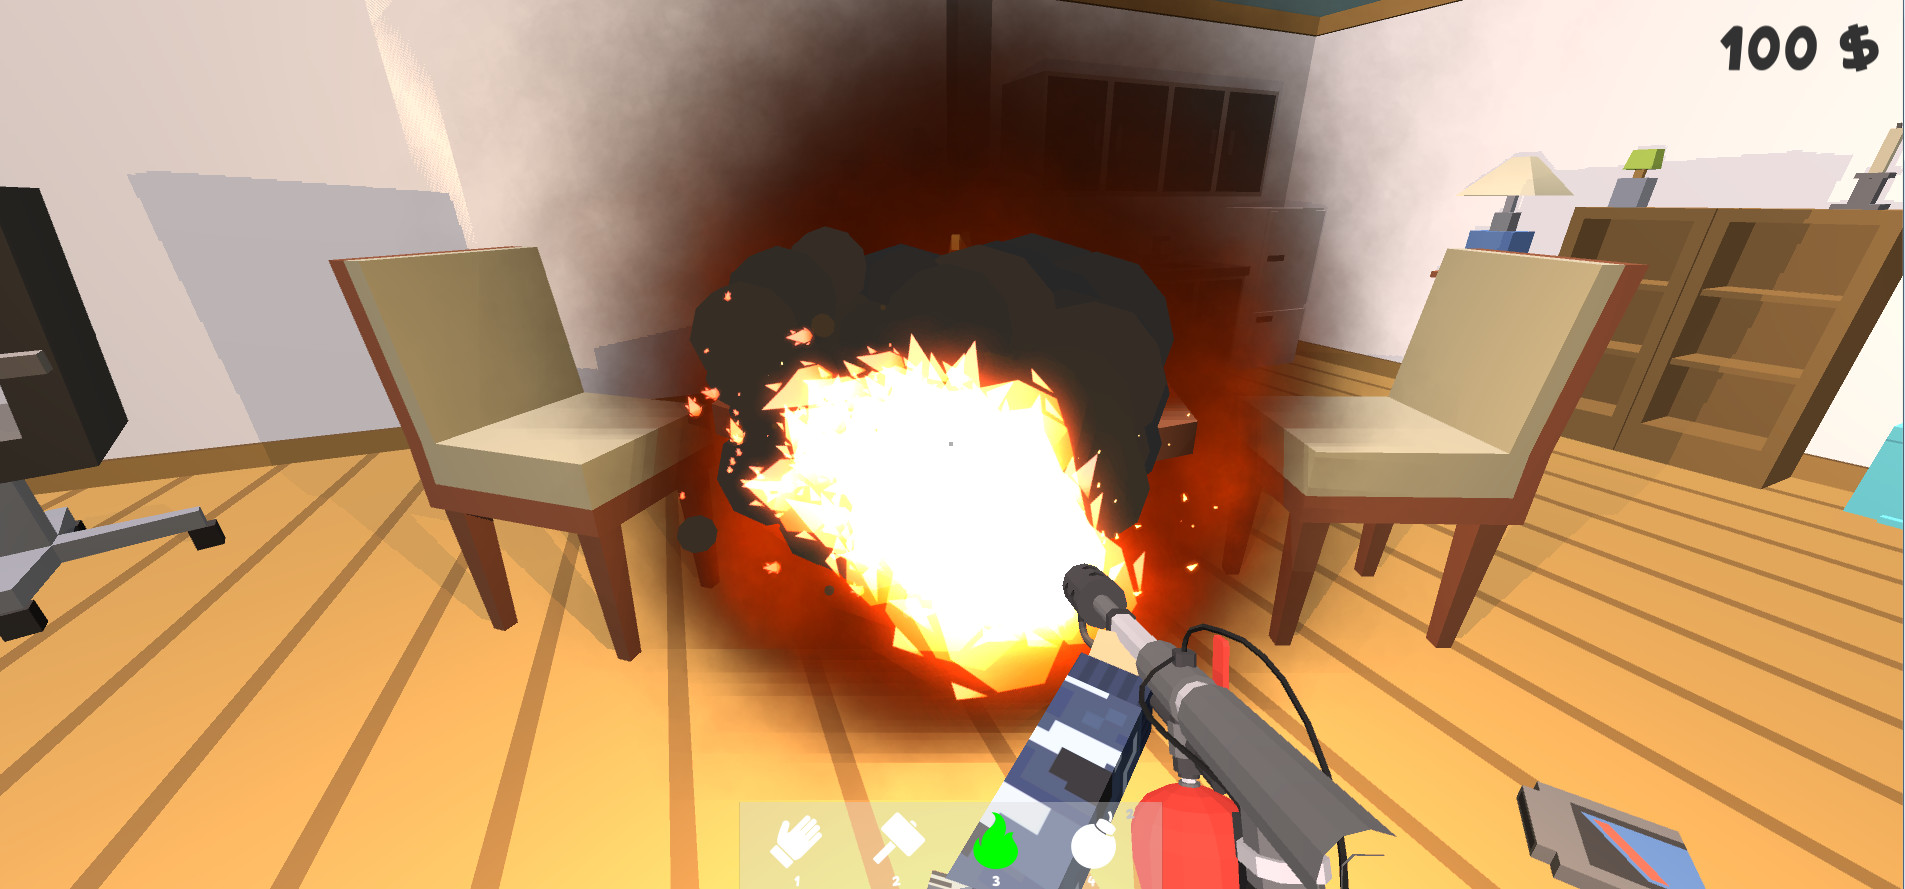 & Tidy Your Room Simulator on Steam